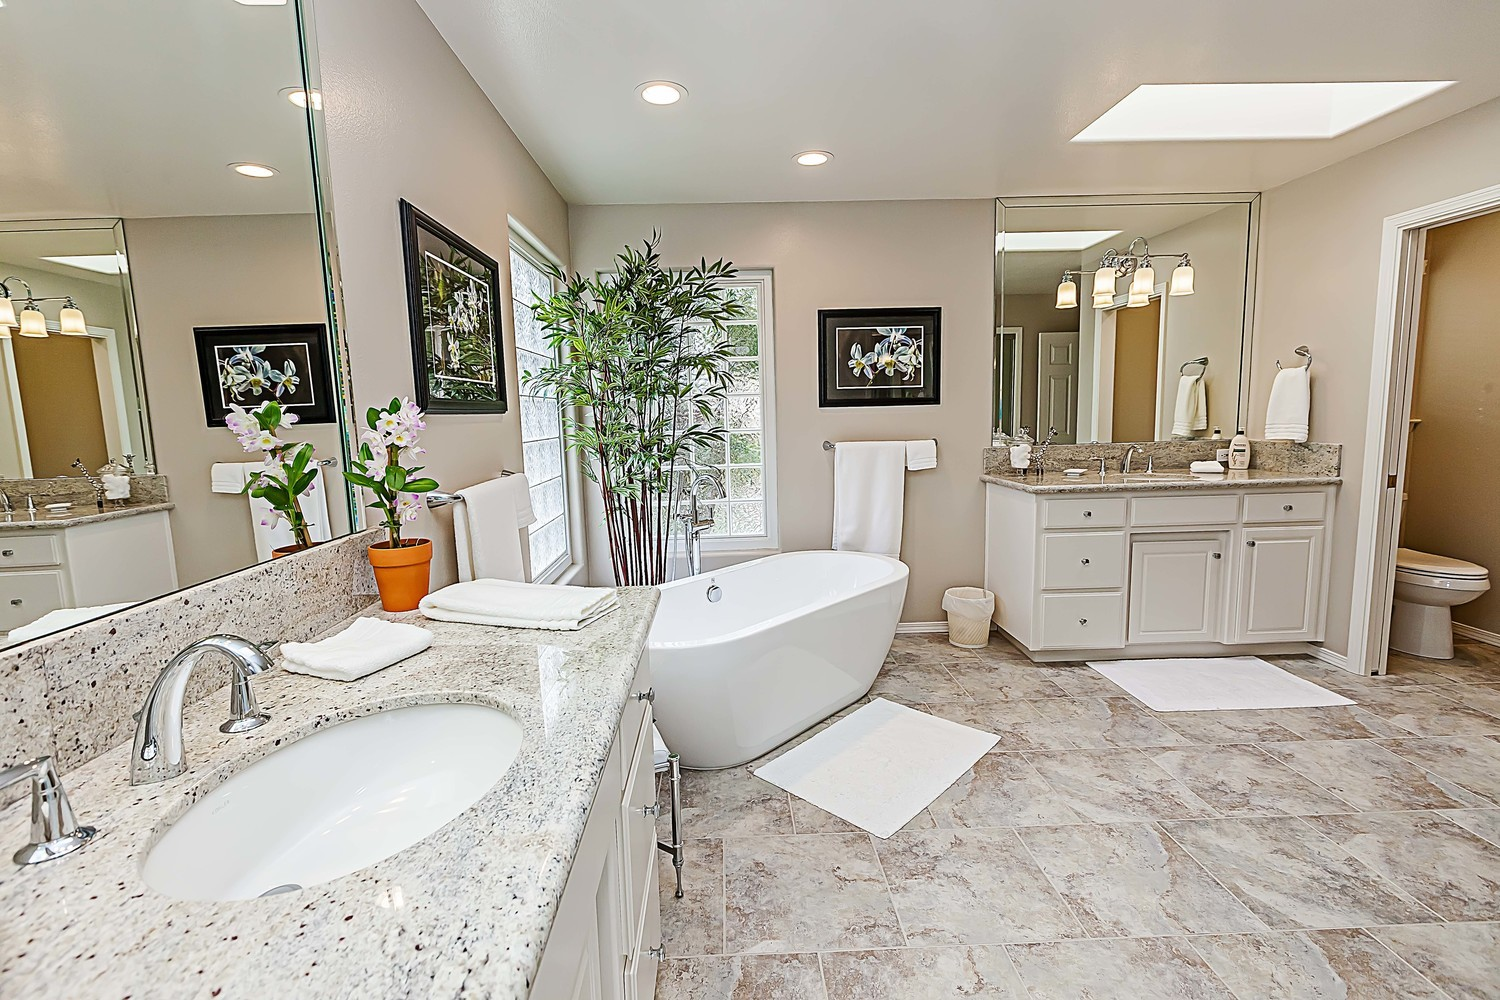 central-areas-to-monitor-in-bathroom-renovation